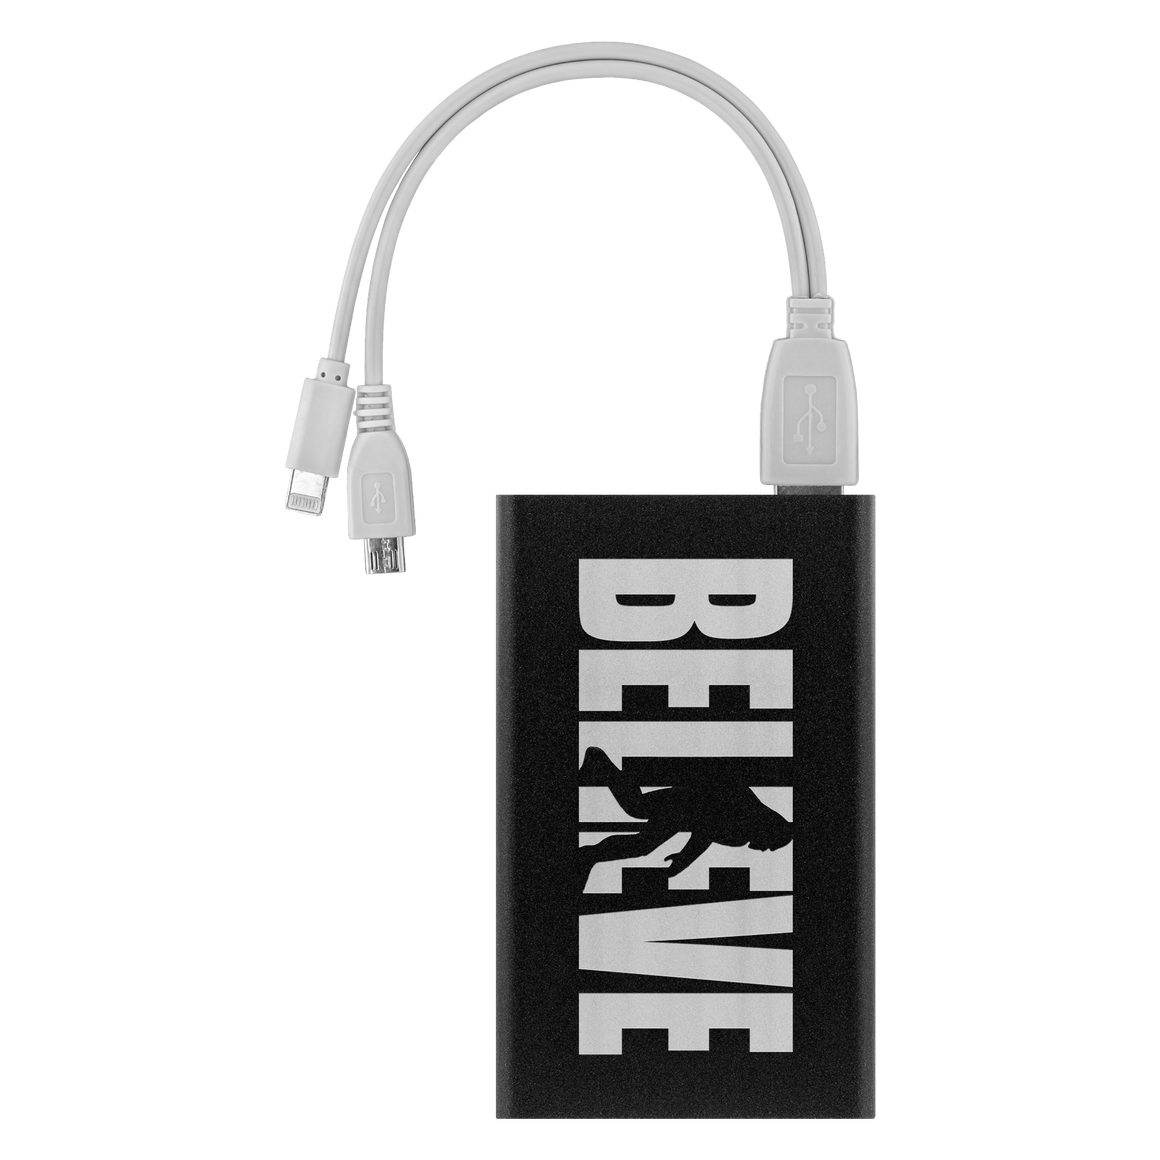 Believe Power Bank